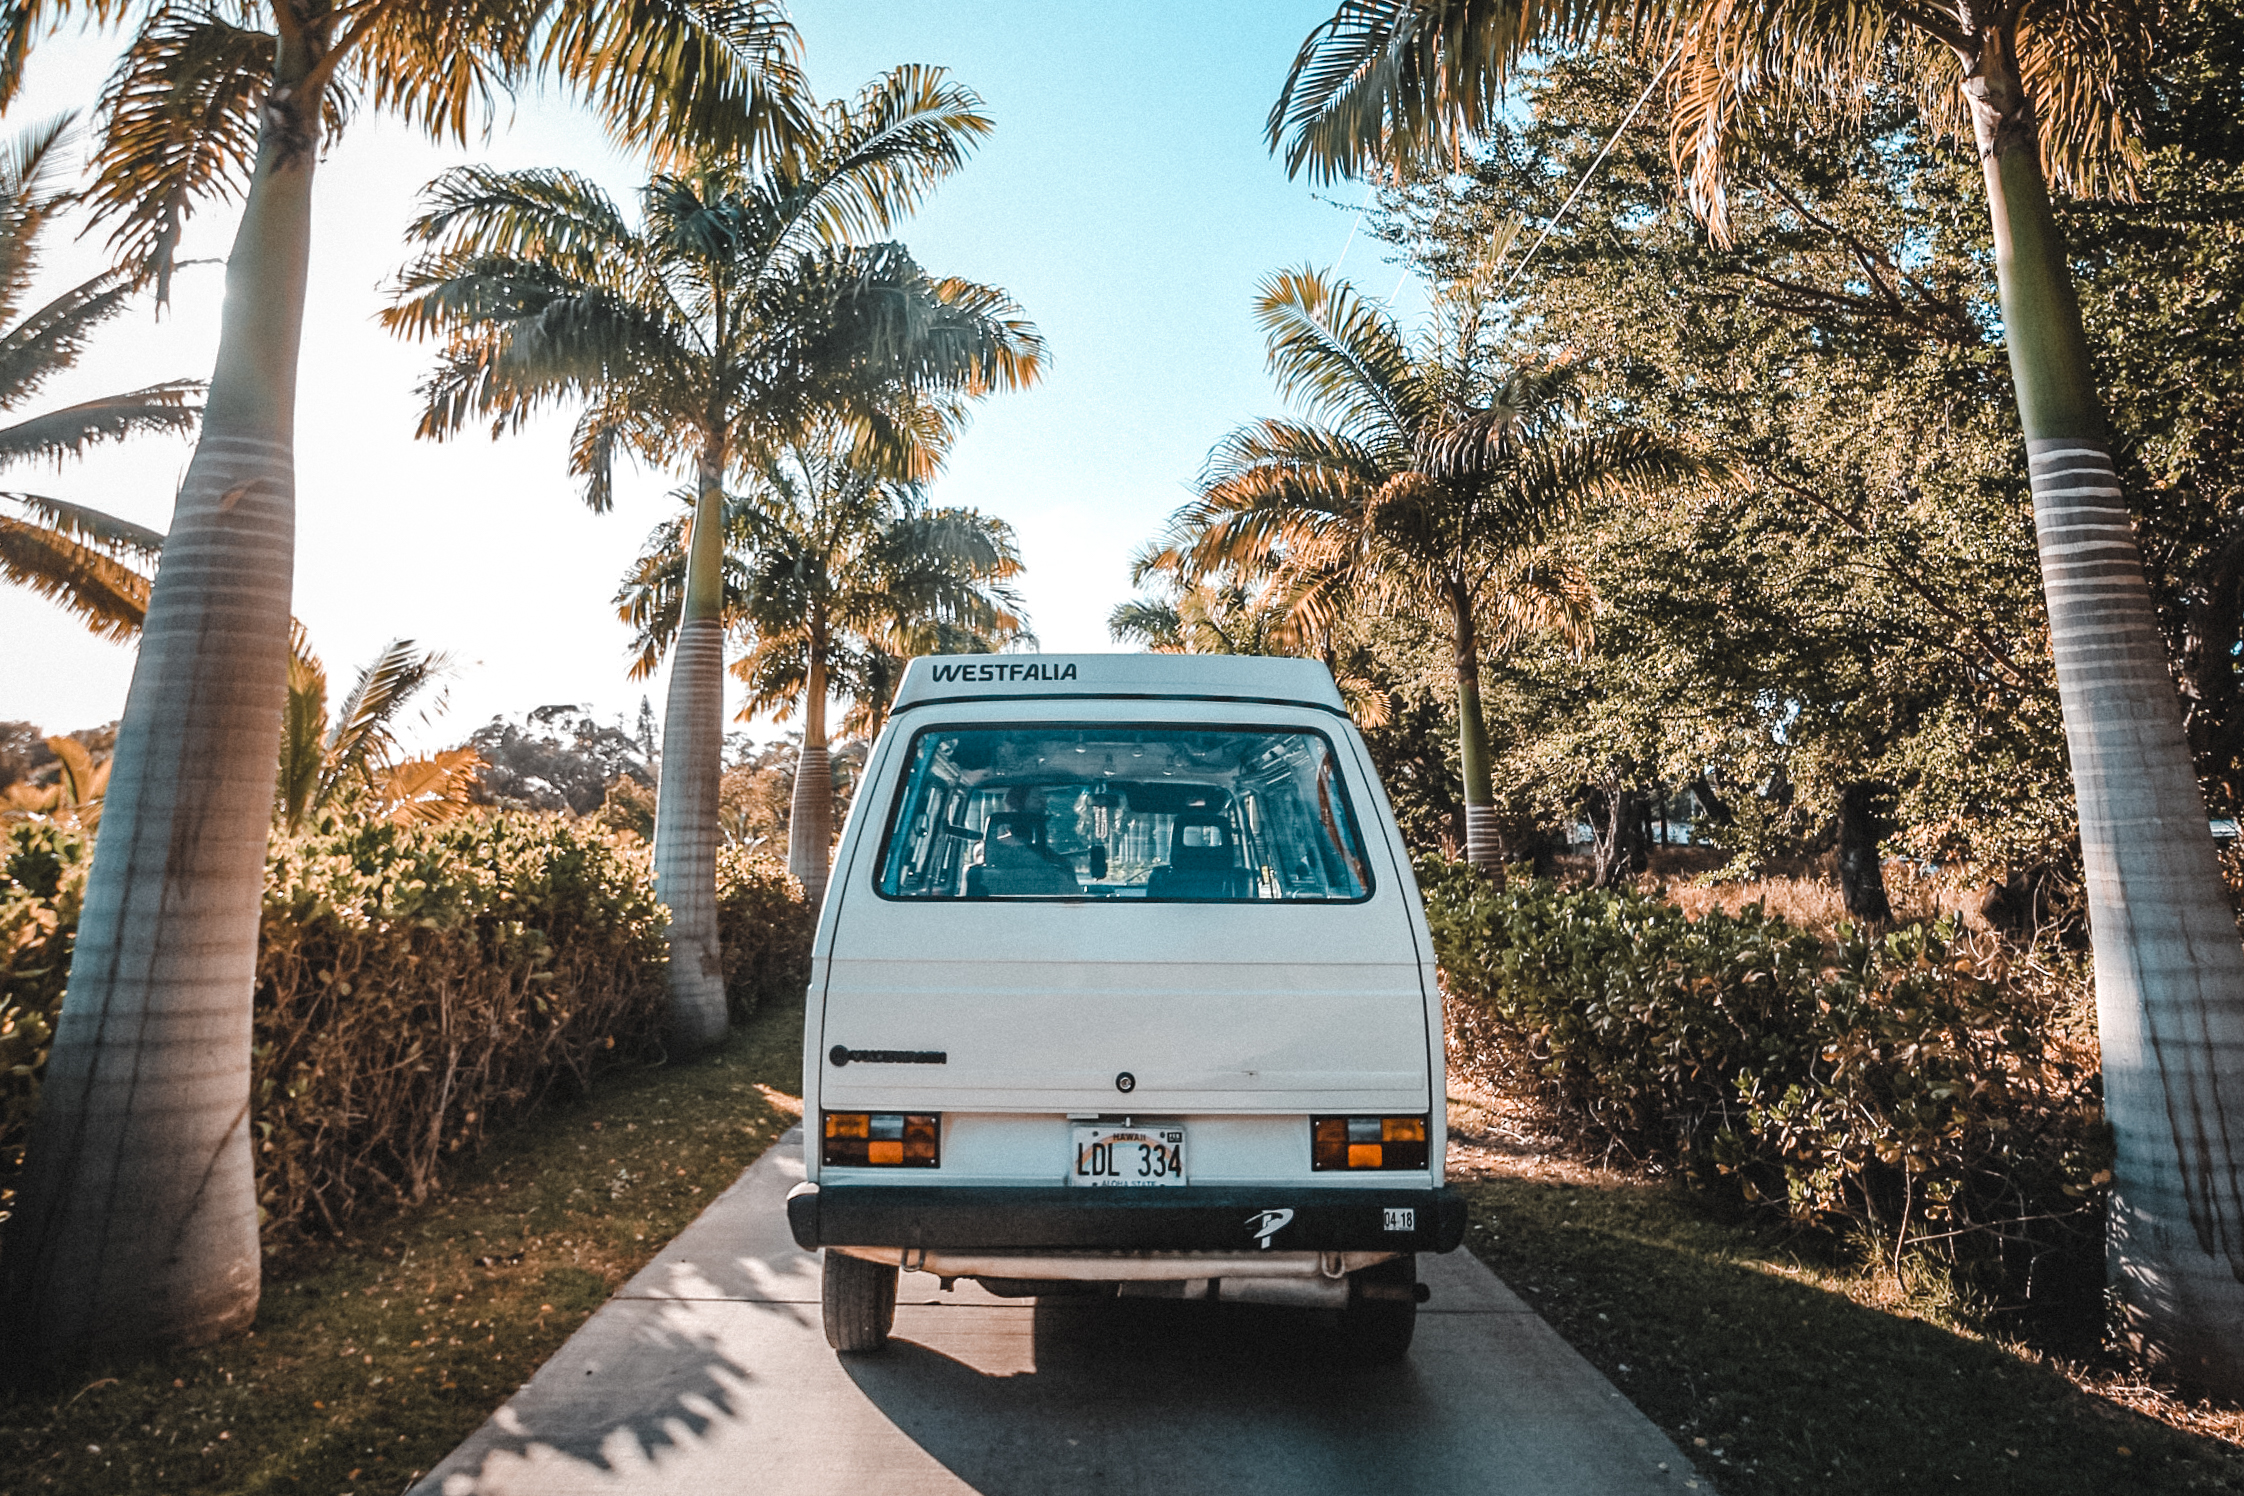 Westfalia Camping on Maui: What You Need to Know